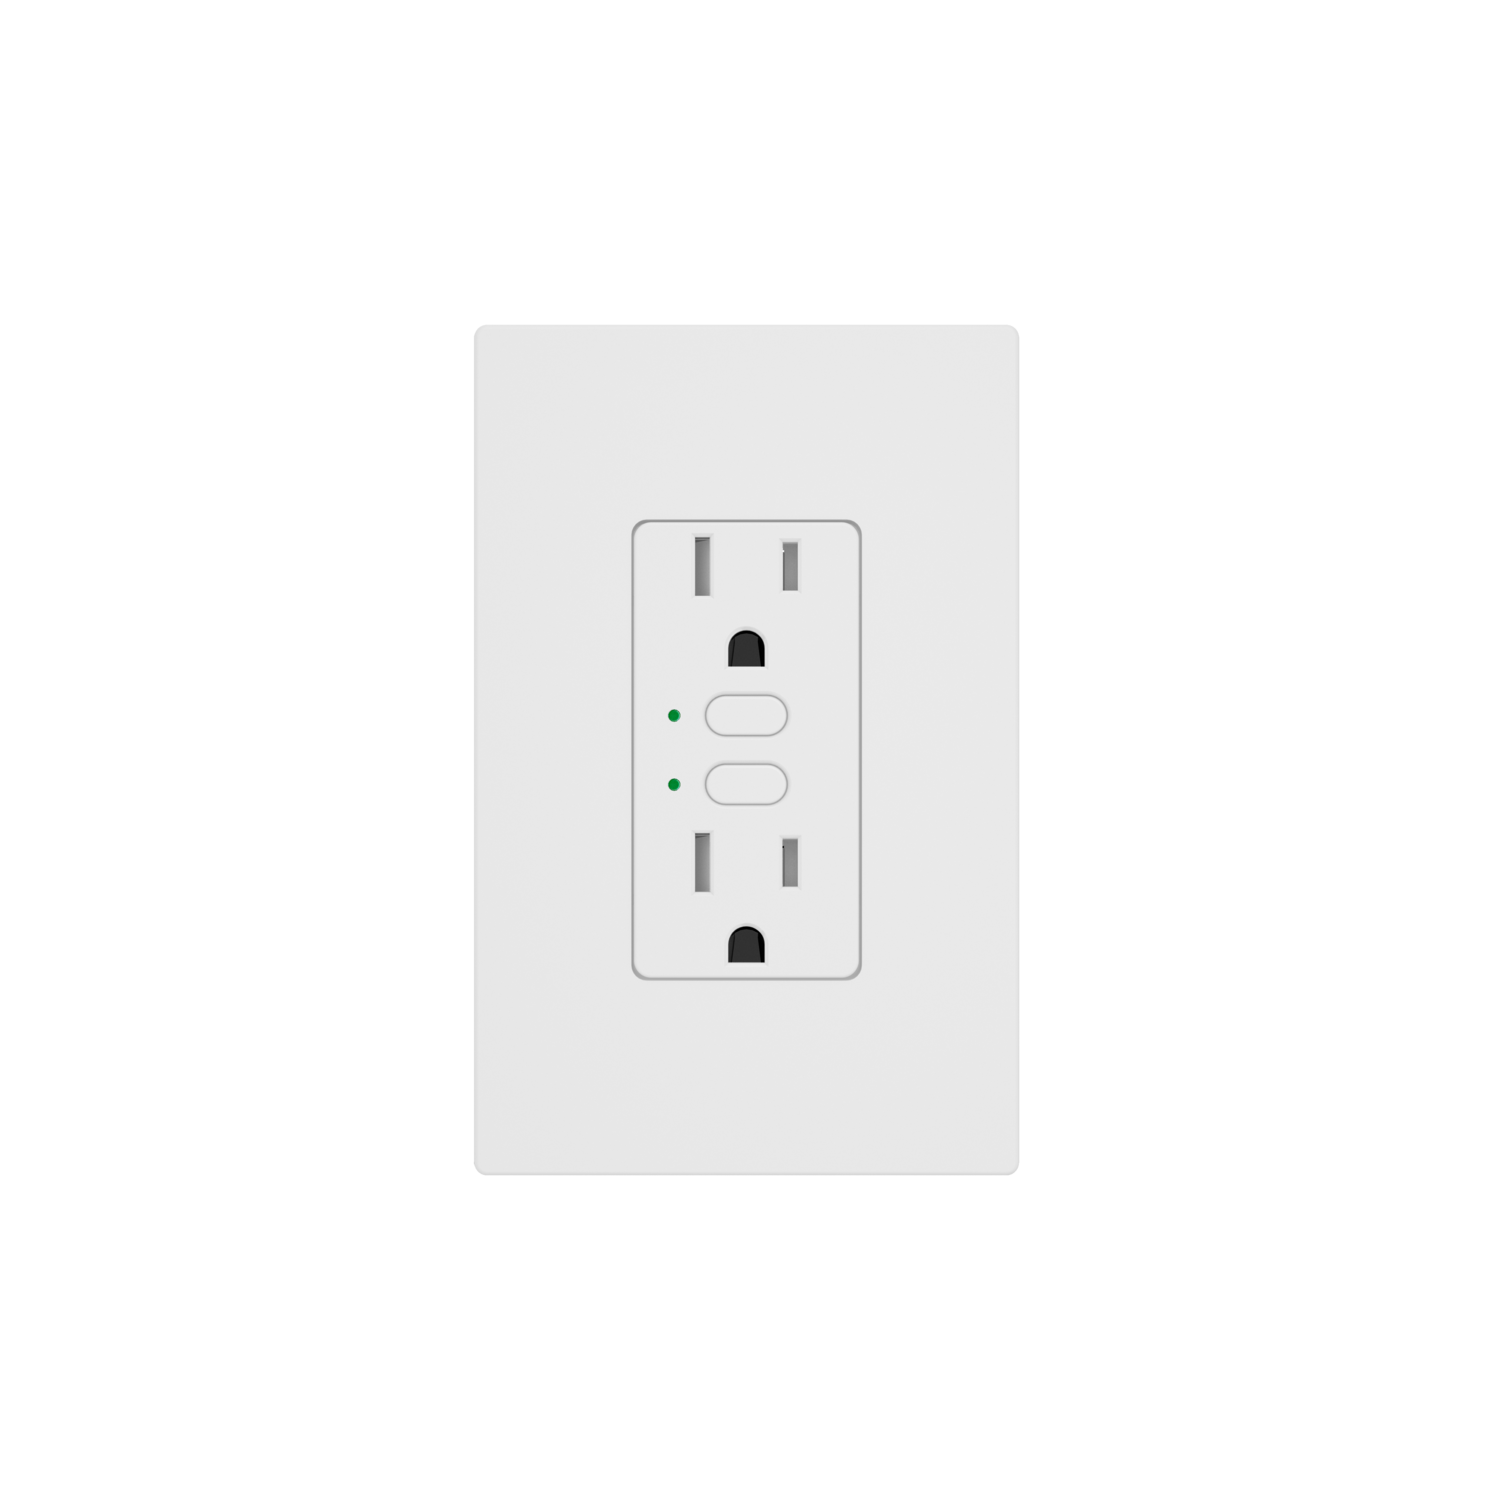 On Off Outlet Setup Insteon Afci Circuit Schematics Find A Guide With Wiring Diagram Images